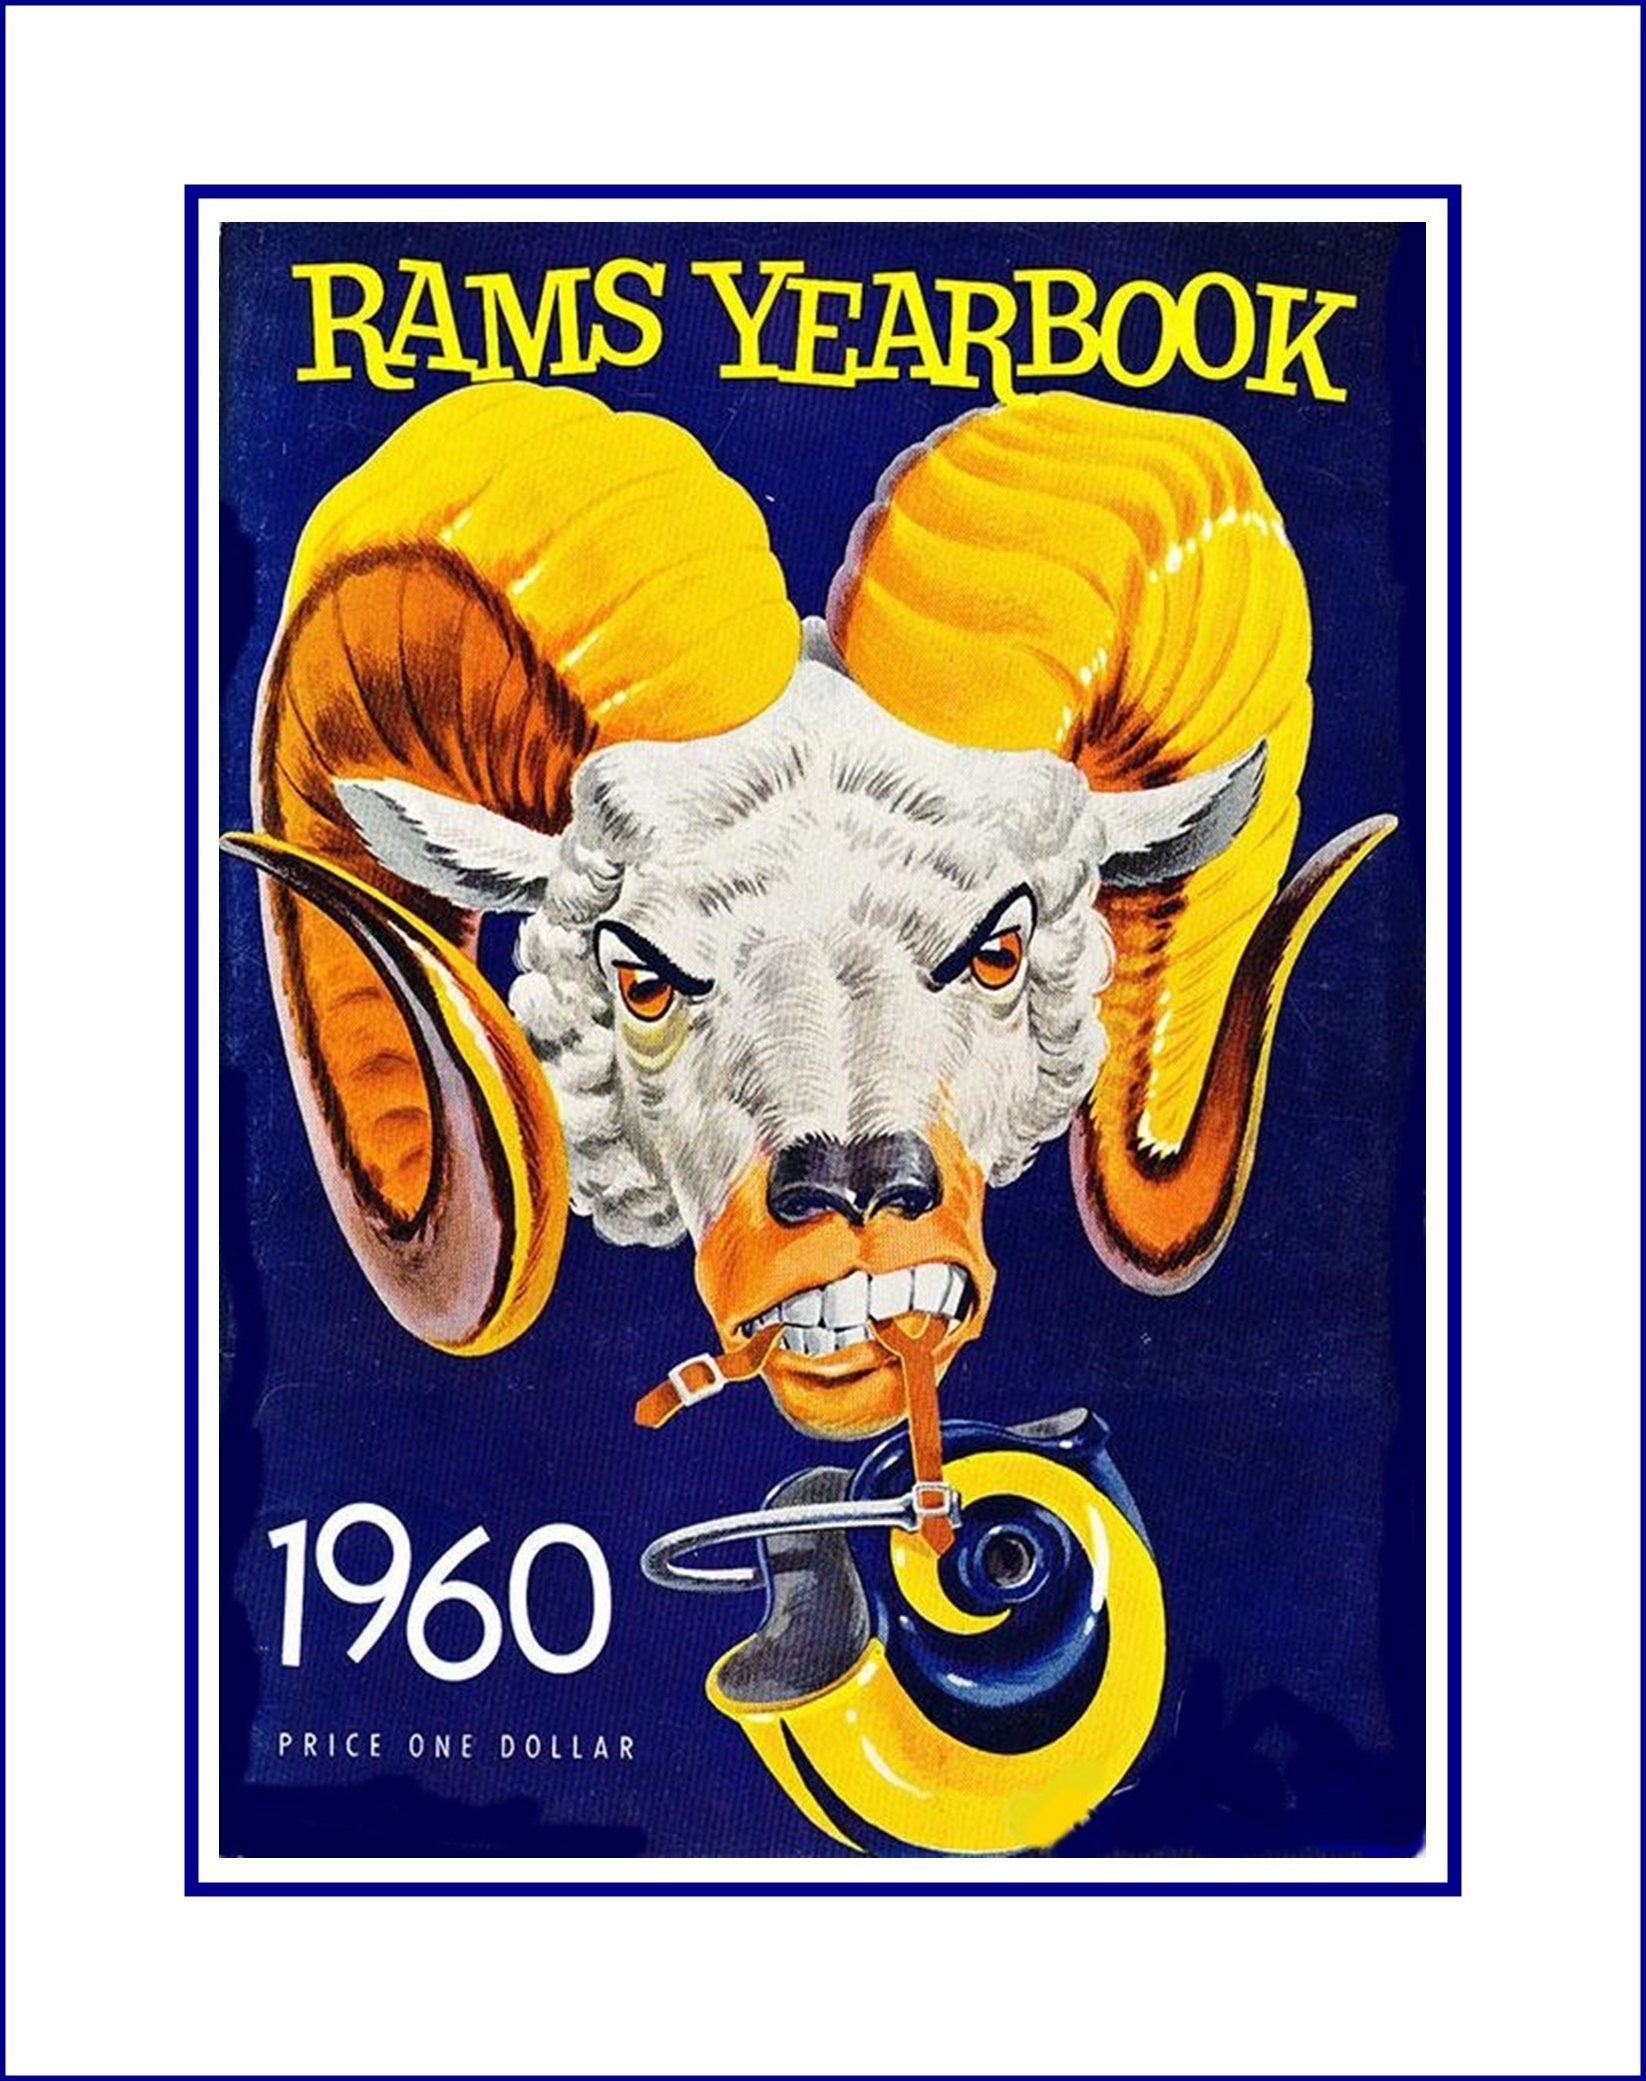 La rams 1960 yearbook cover art poster nfl football fan wall art la rams 1960 yearbook cover art poster nfl football fan wall art gift retro amipublicfo Images